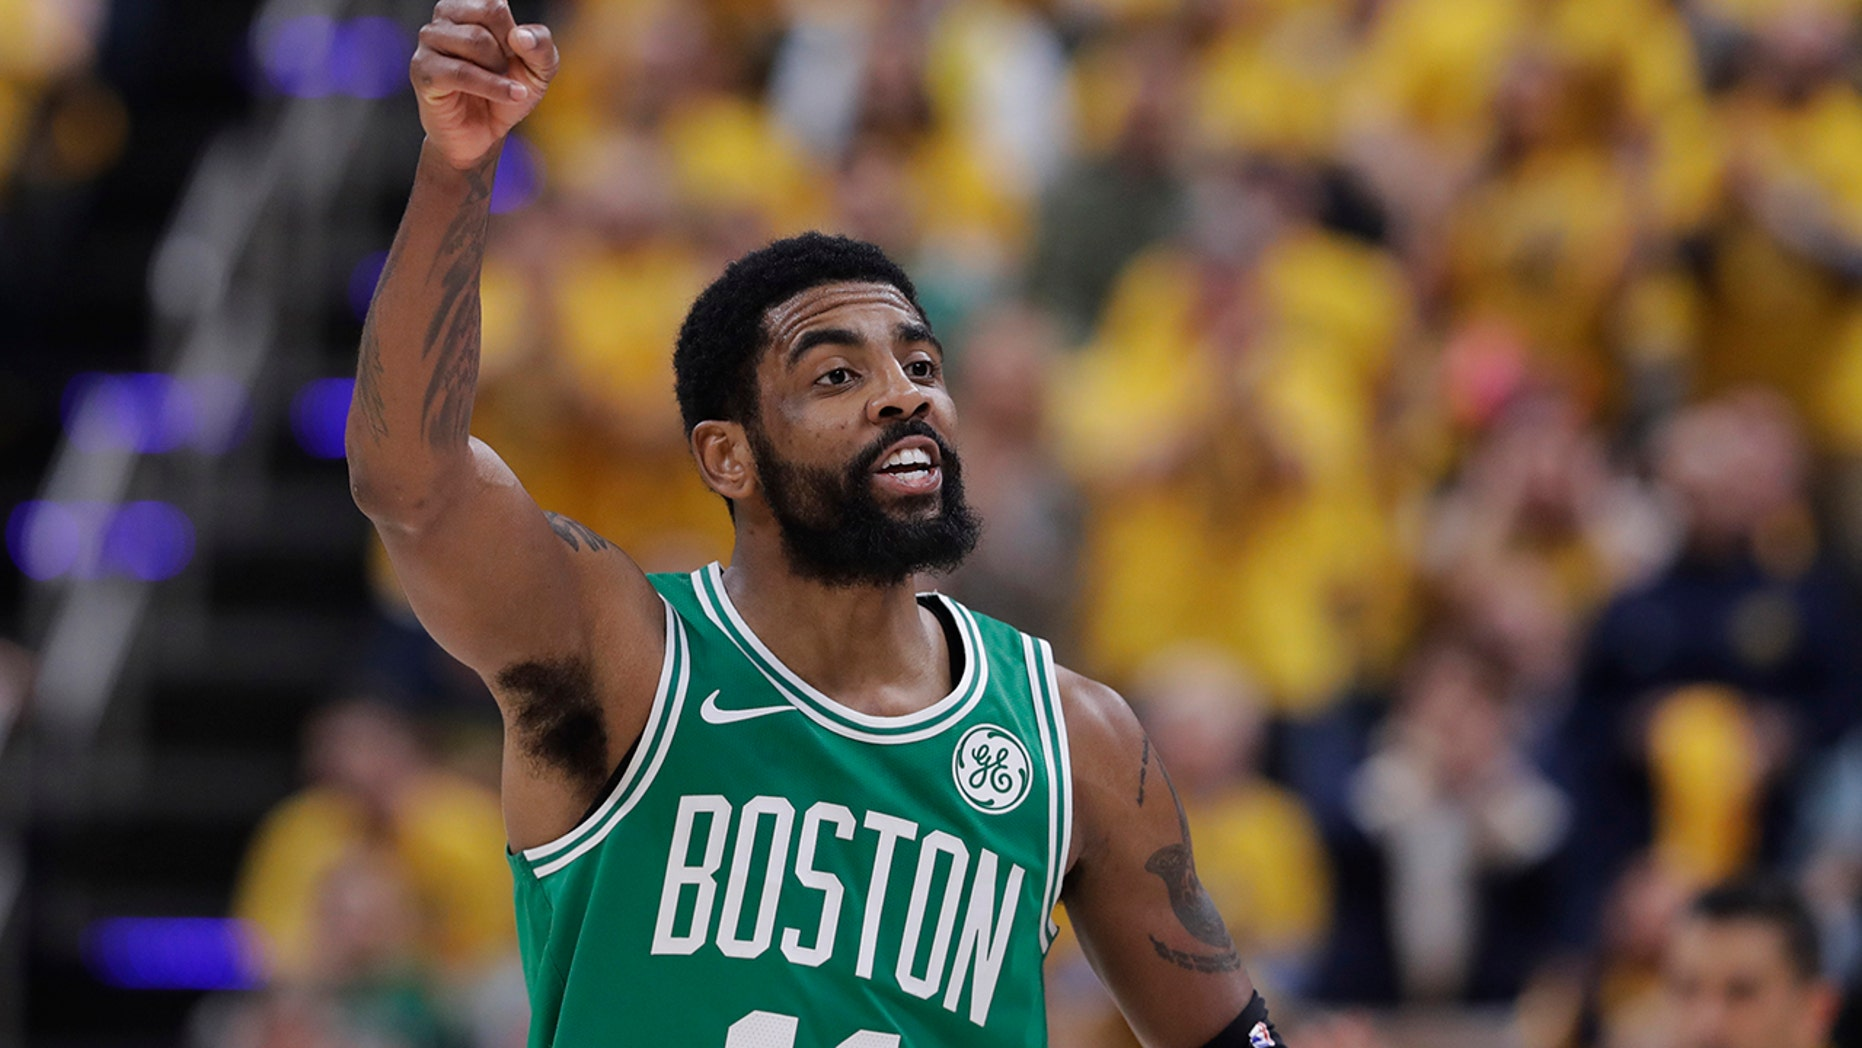 Boston Celtics guard Kyrie Irving gestures during the first half of Game 3 of the team's NBA basketball first-round playoff series against the Indiana Pacers, Friday, April 19, 2019, in Indianapolis. (AP Photo/Darron Cummings)